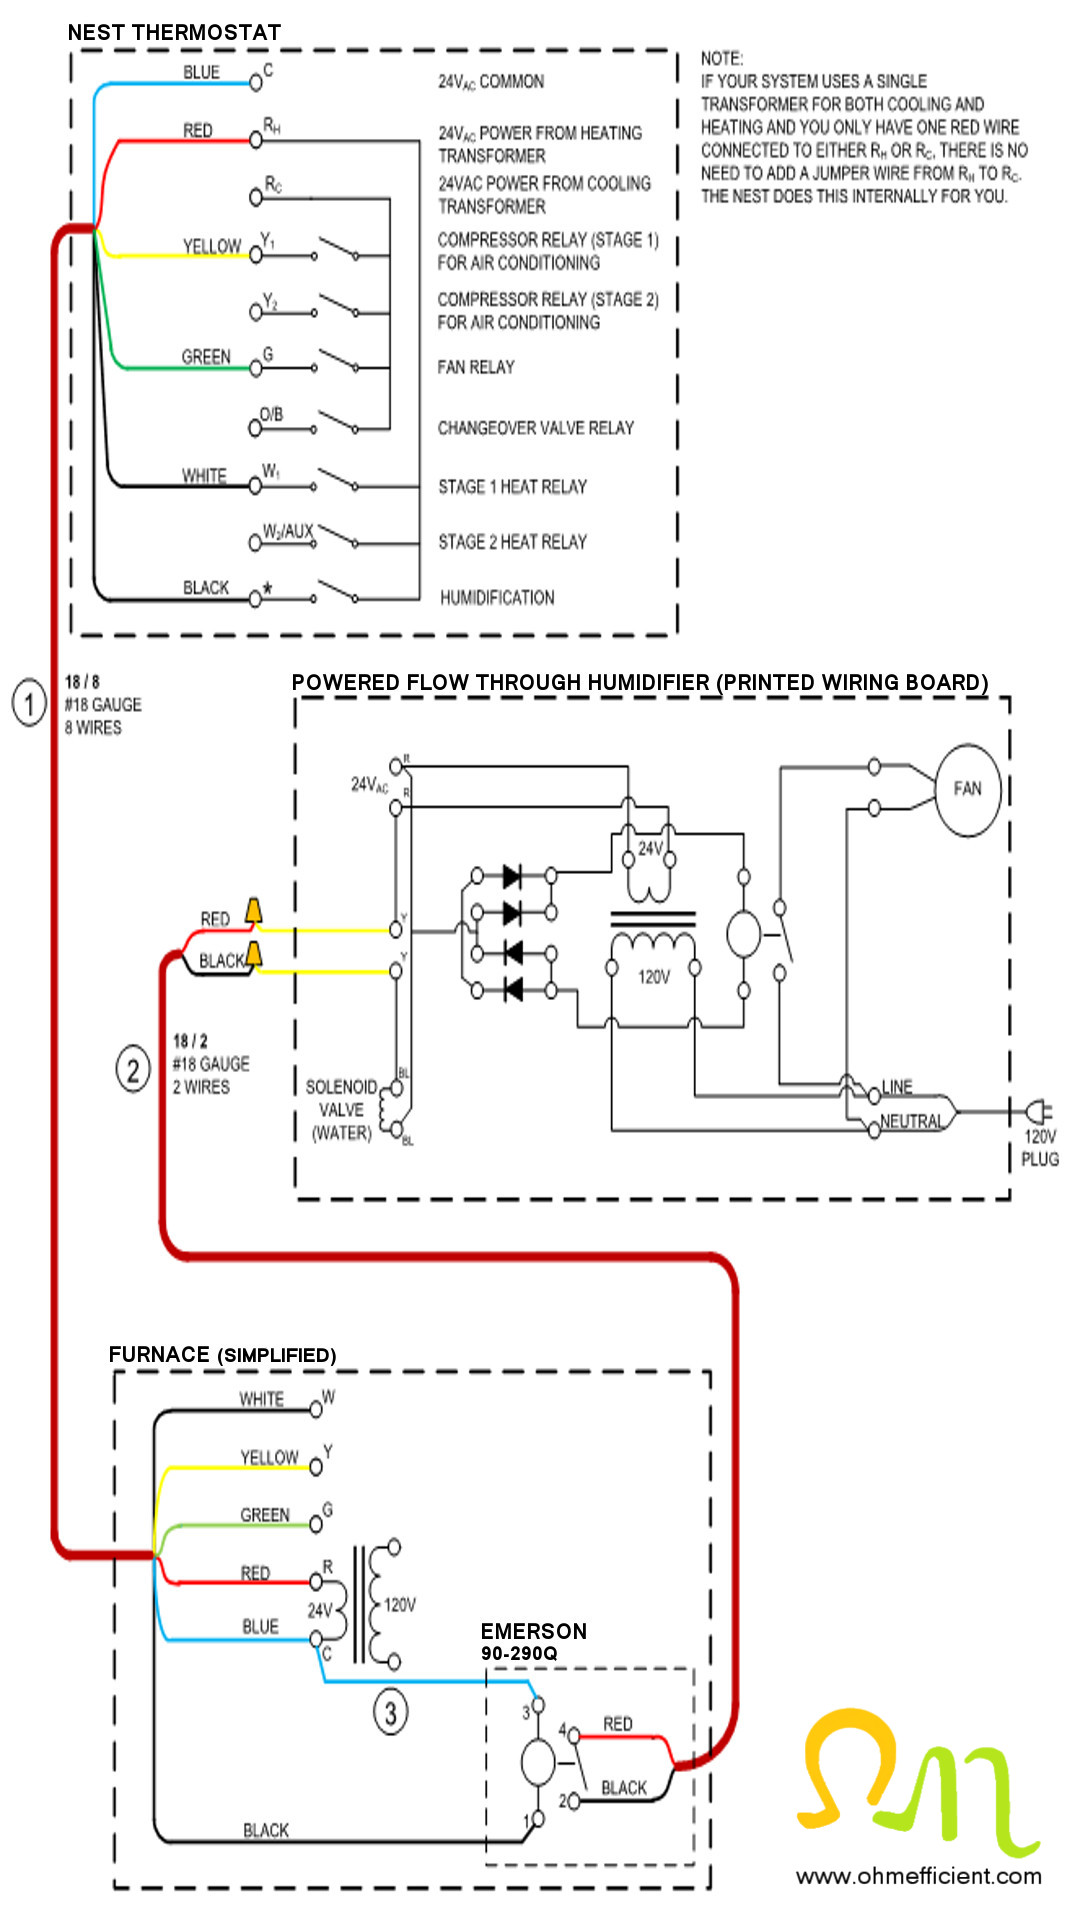 Nx 1140  White Rodgers Humidifier Wiring Diagram Free Diagram